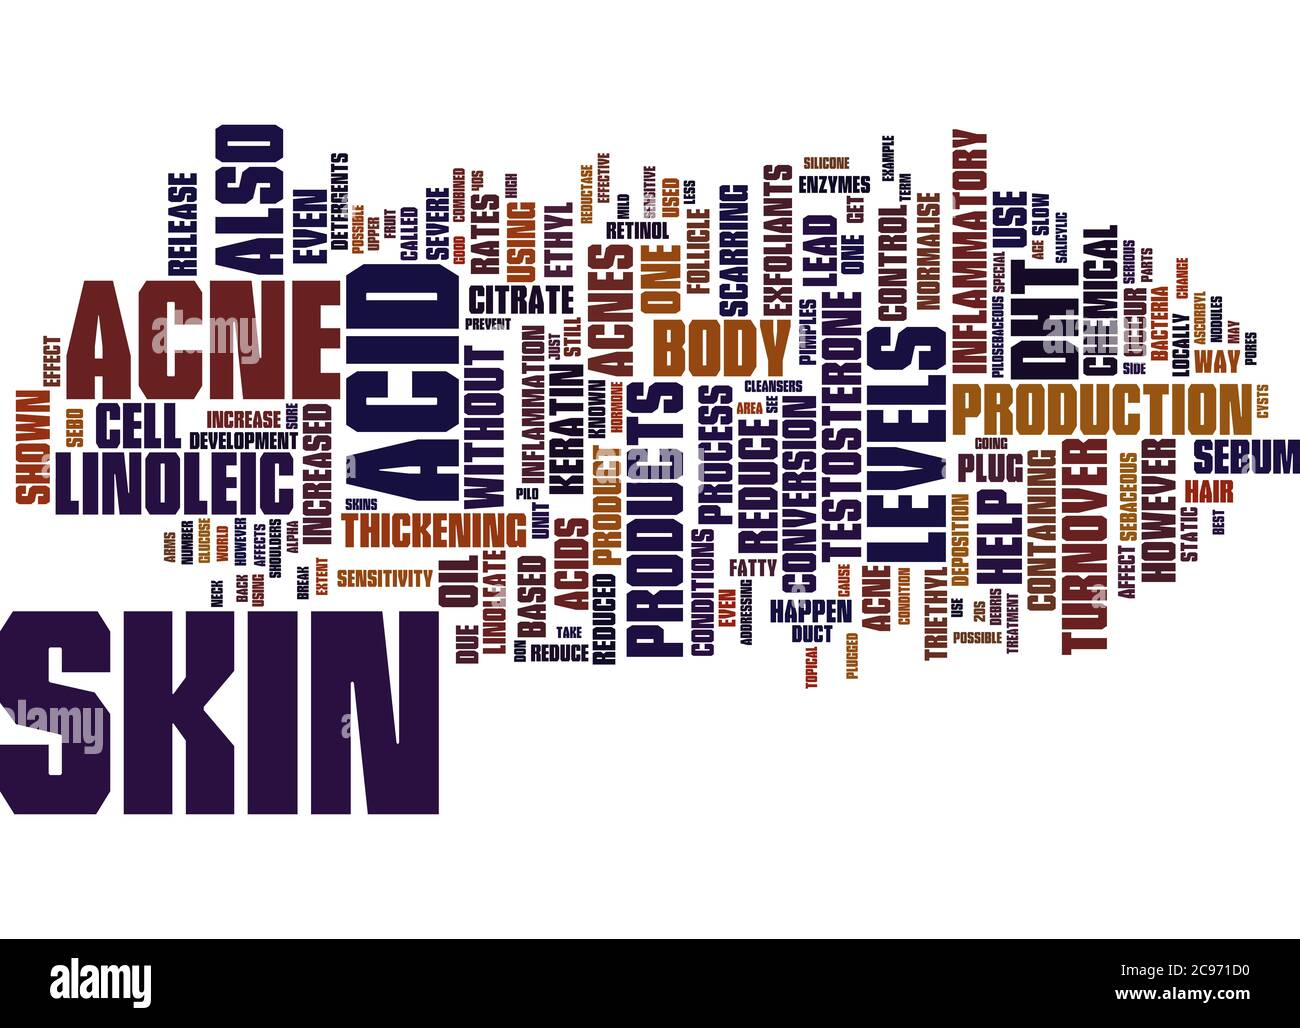 Word Cloud Summary Of Article The Causes Of And Possible Solutions To Acne Vulgaris Stock Photo Alamy